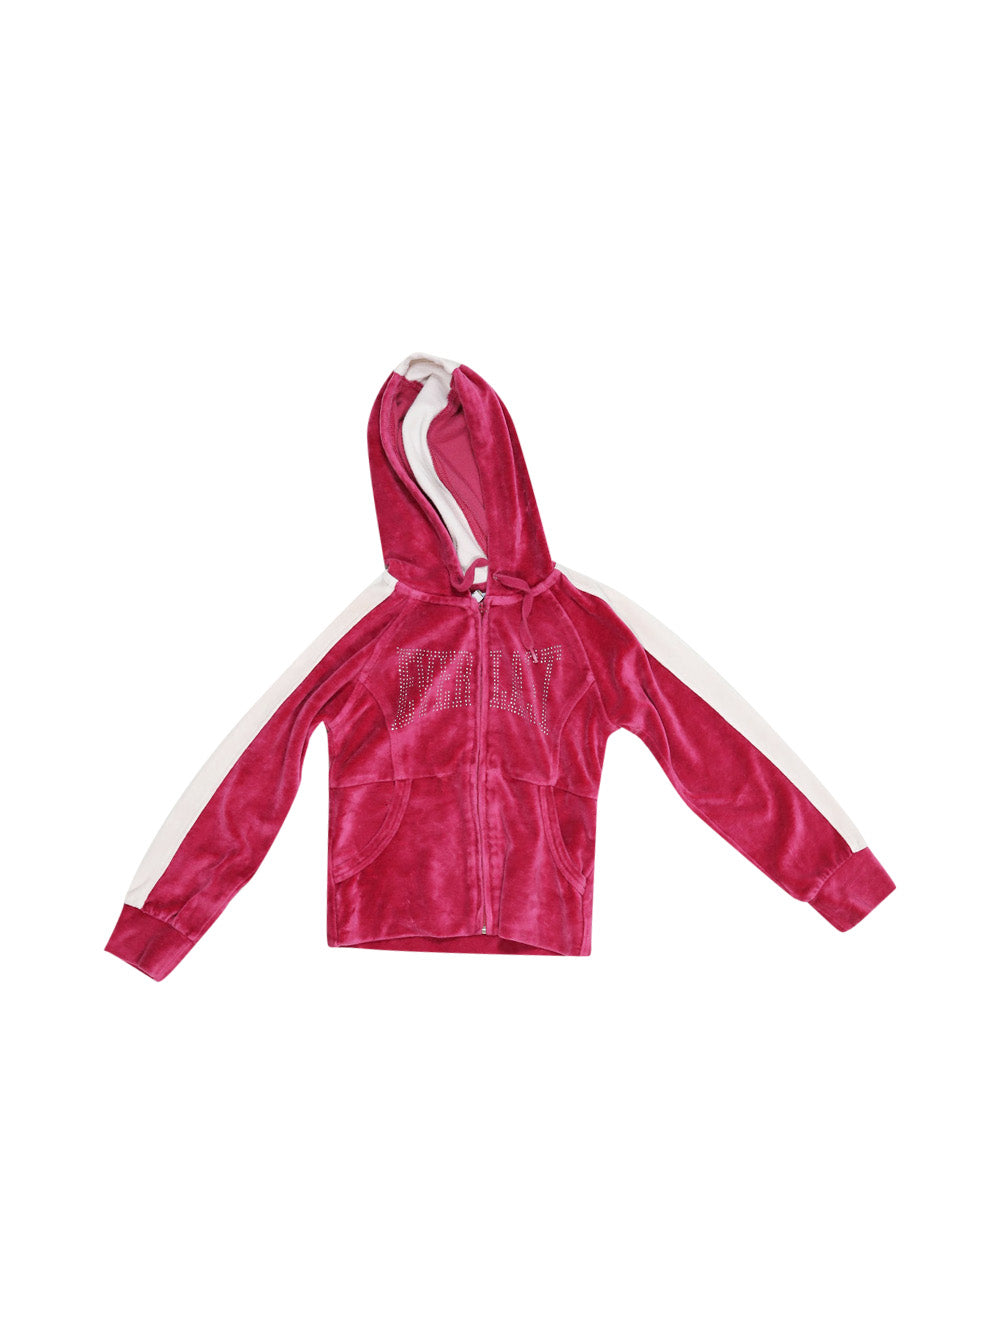 Front photo of Preloved Everlast Pink Girl's sweatshirt - size 3-4 yrs